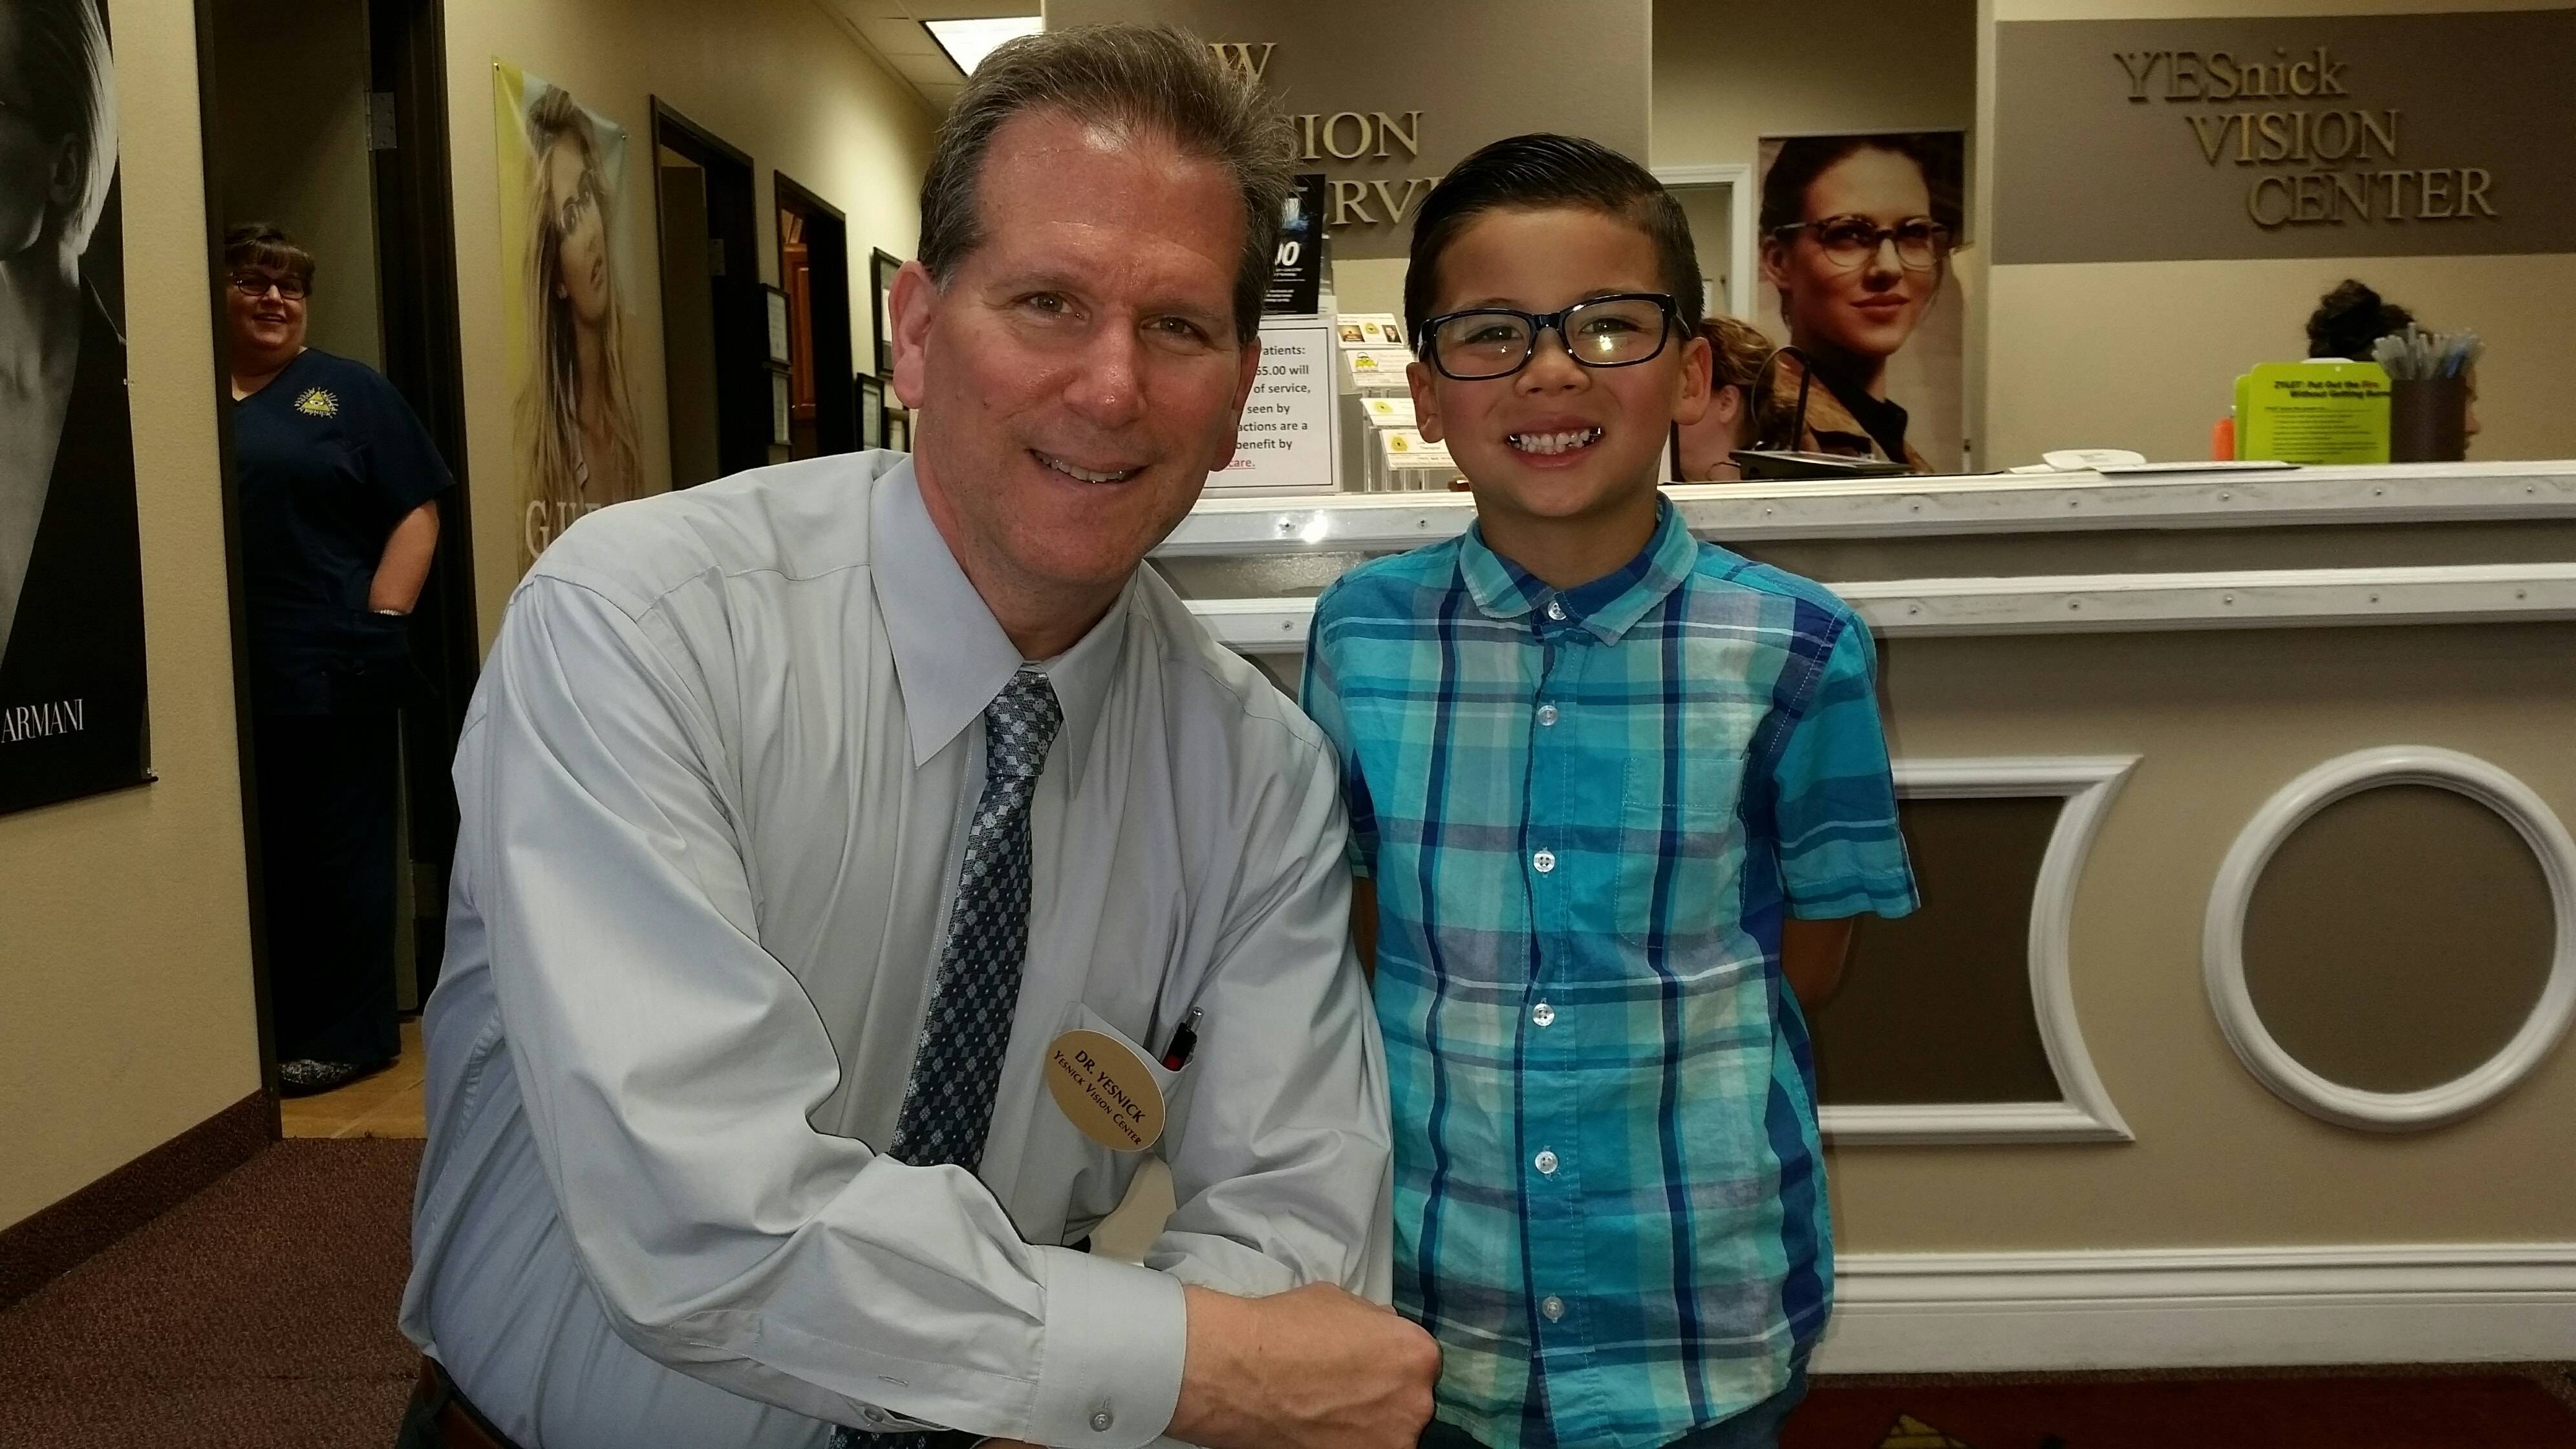 Meet our Las Vegas Optometrist Dr Yesnick